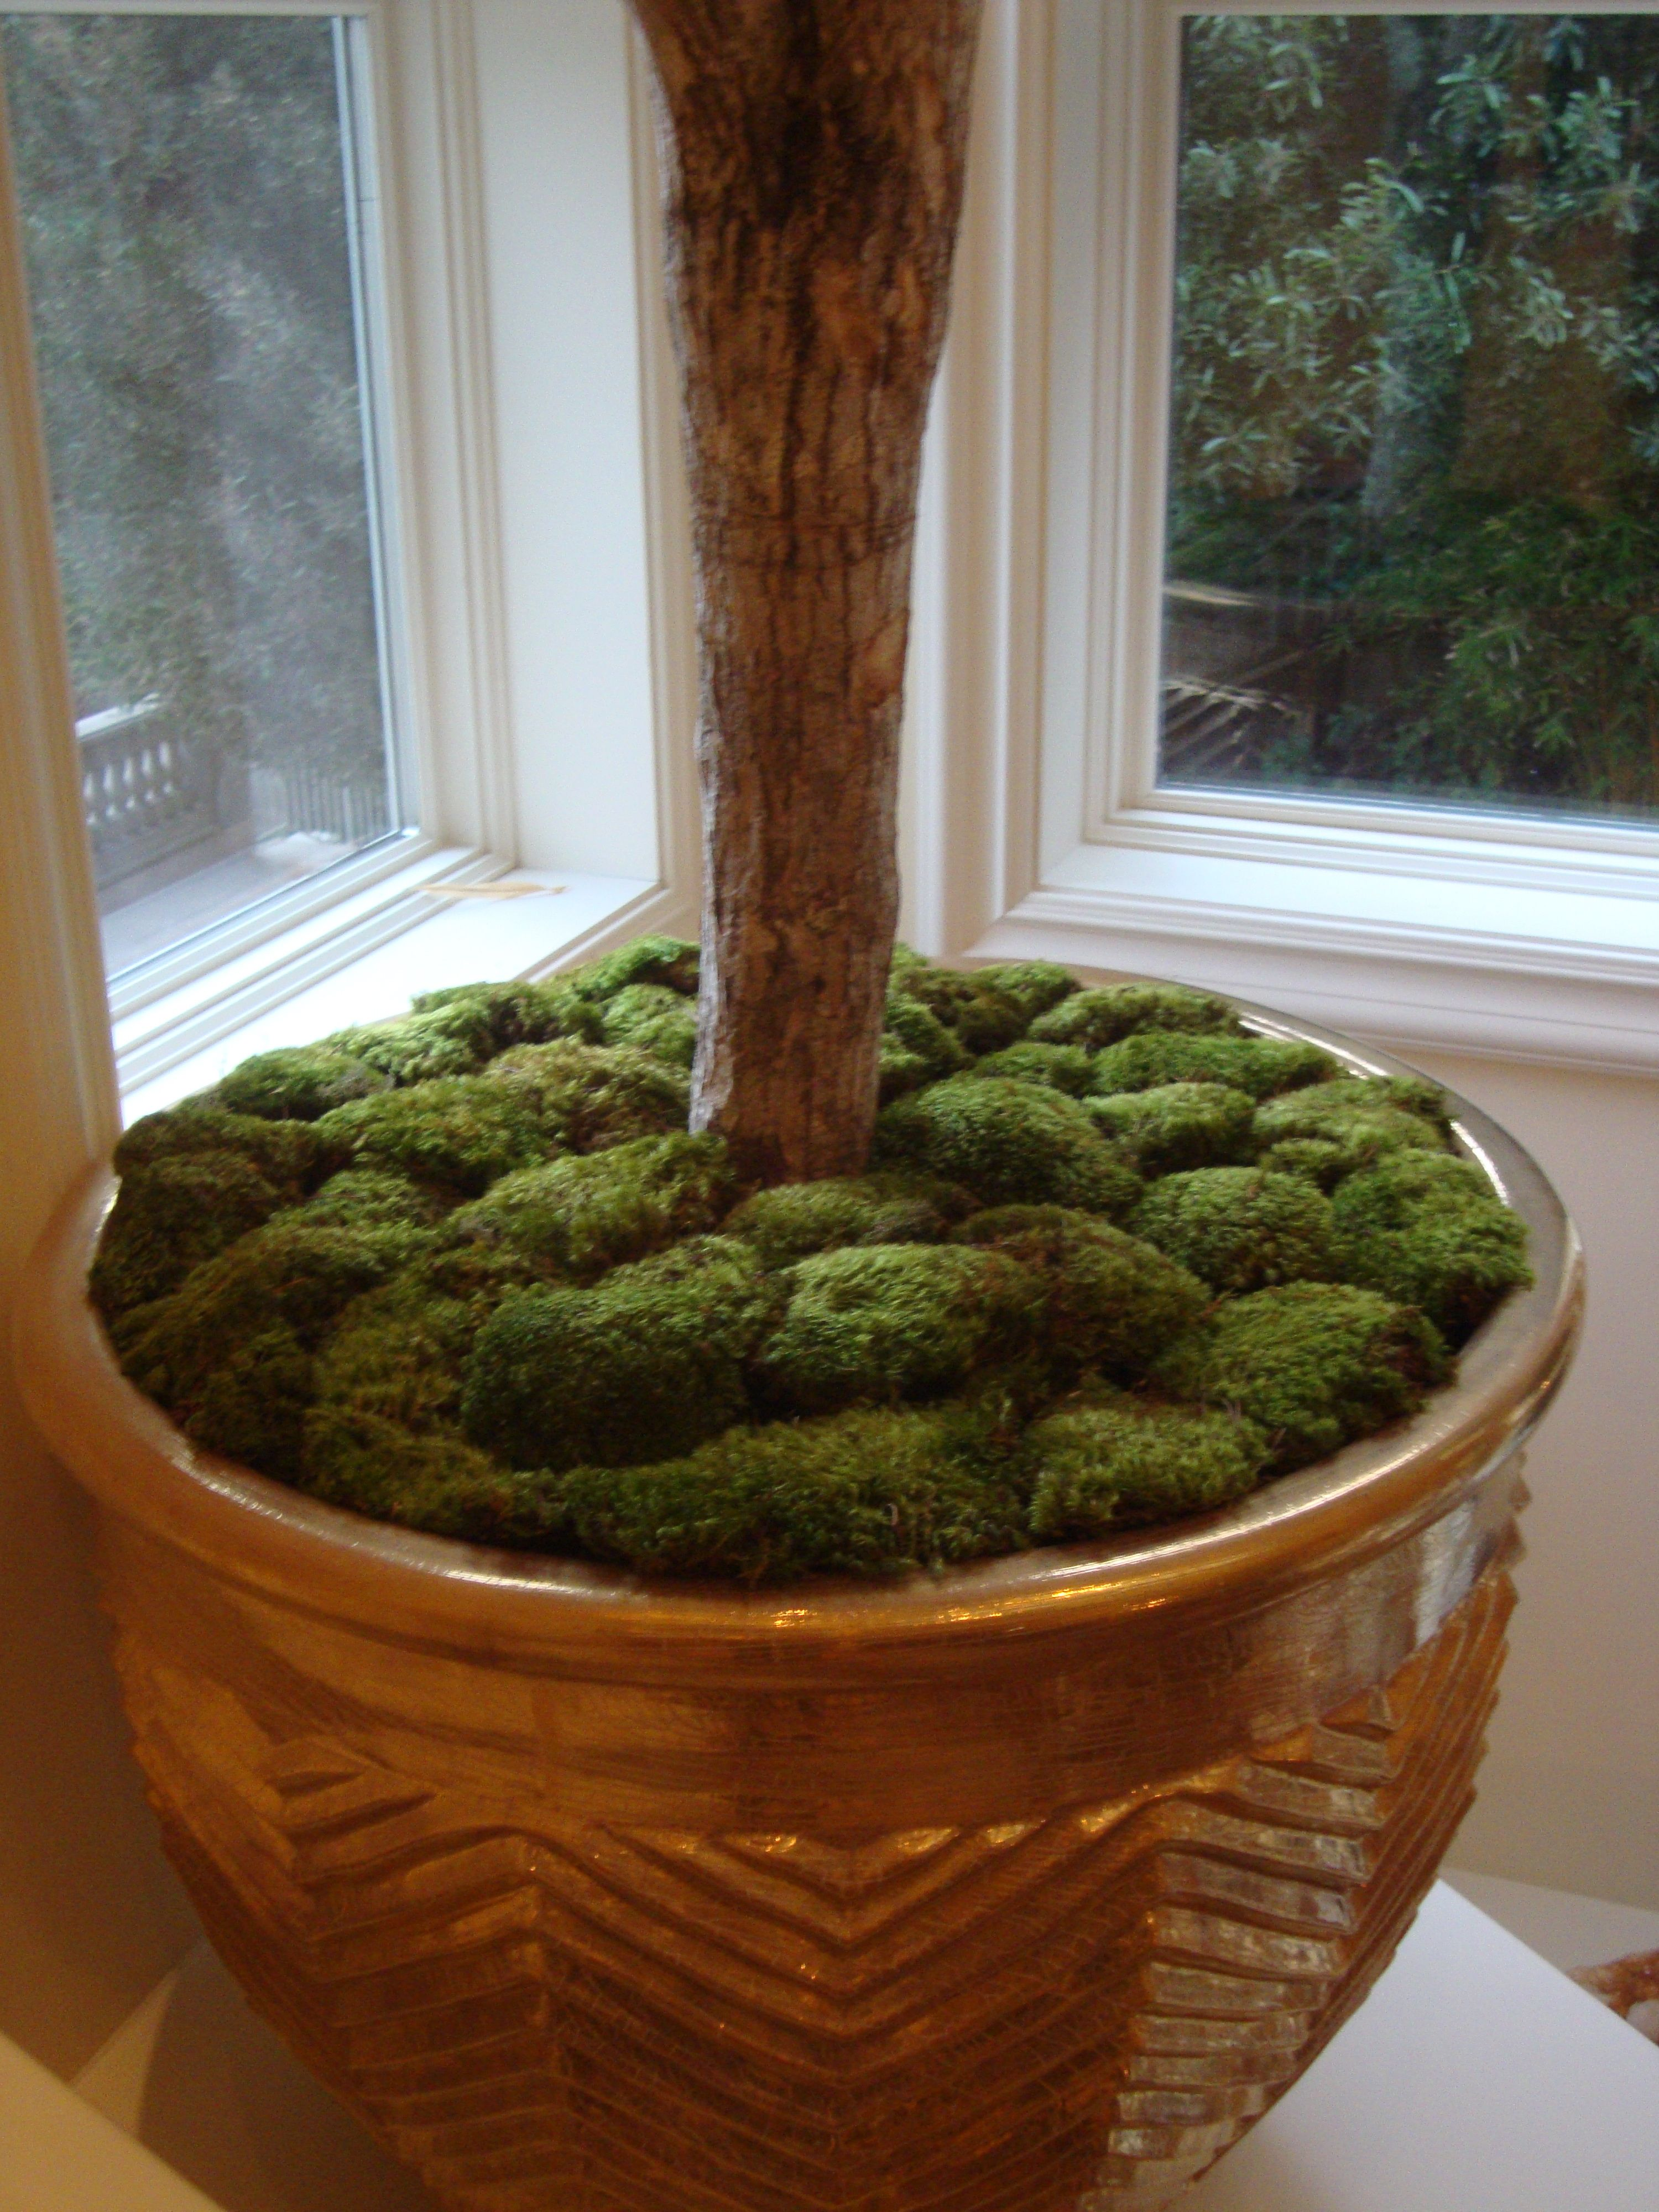 GILDEN PLANTER & MOSS fit for a 2 story Song of India tree